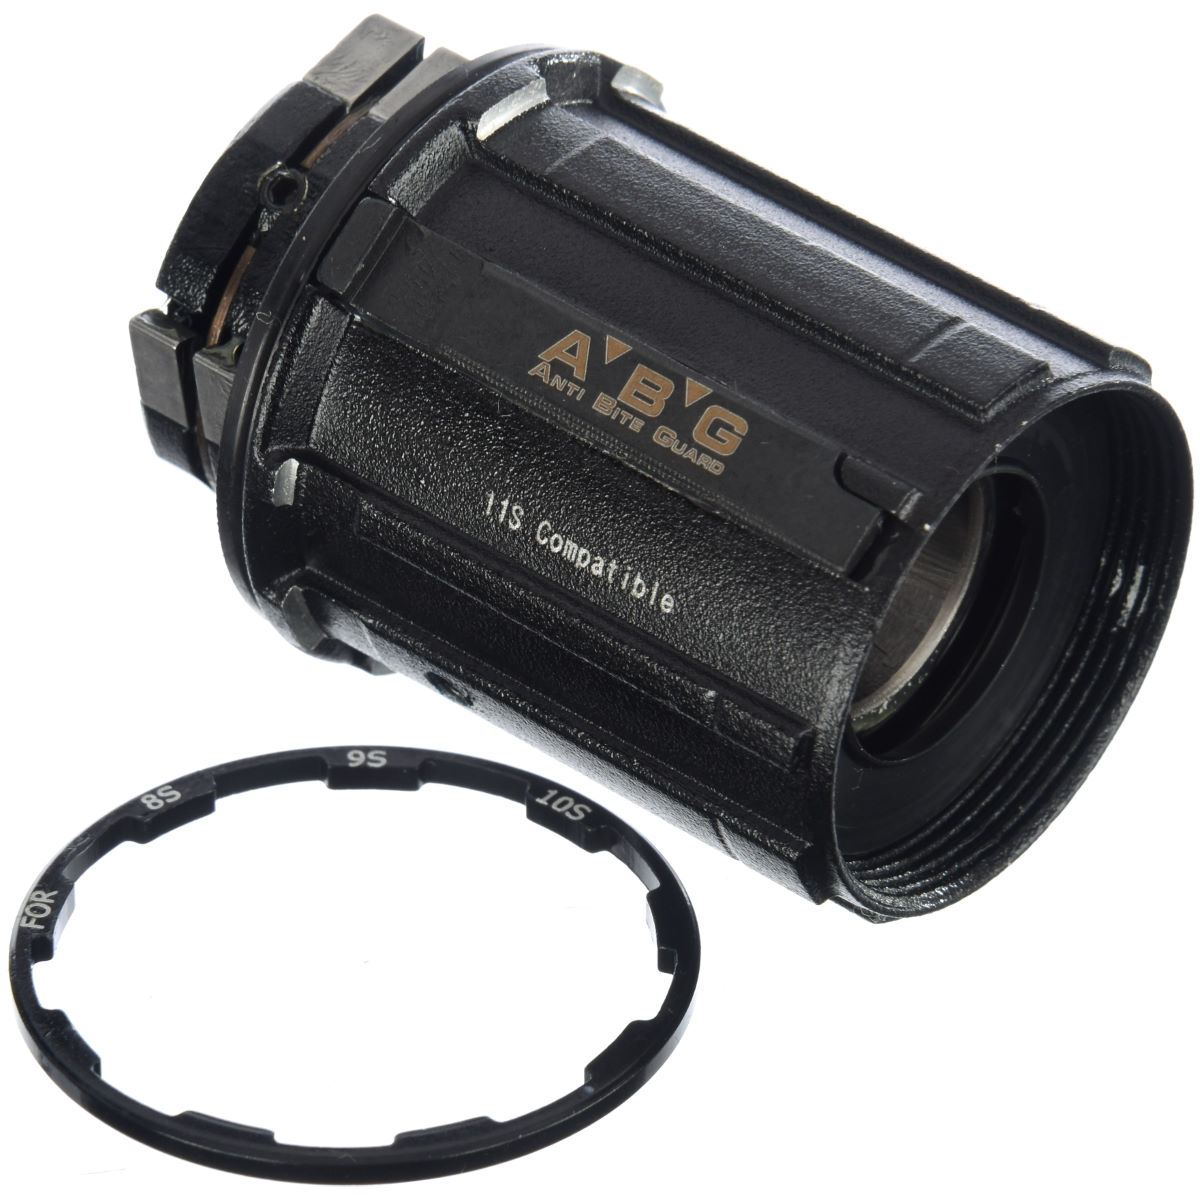 Prime Rd020 Freehub Body - Abg - One Size Neutral  Freehub Spares